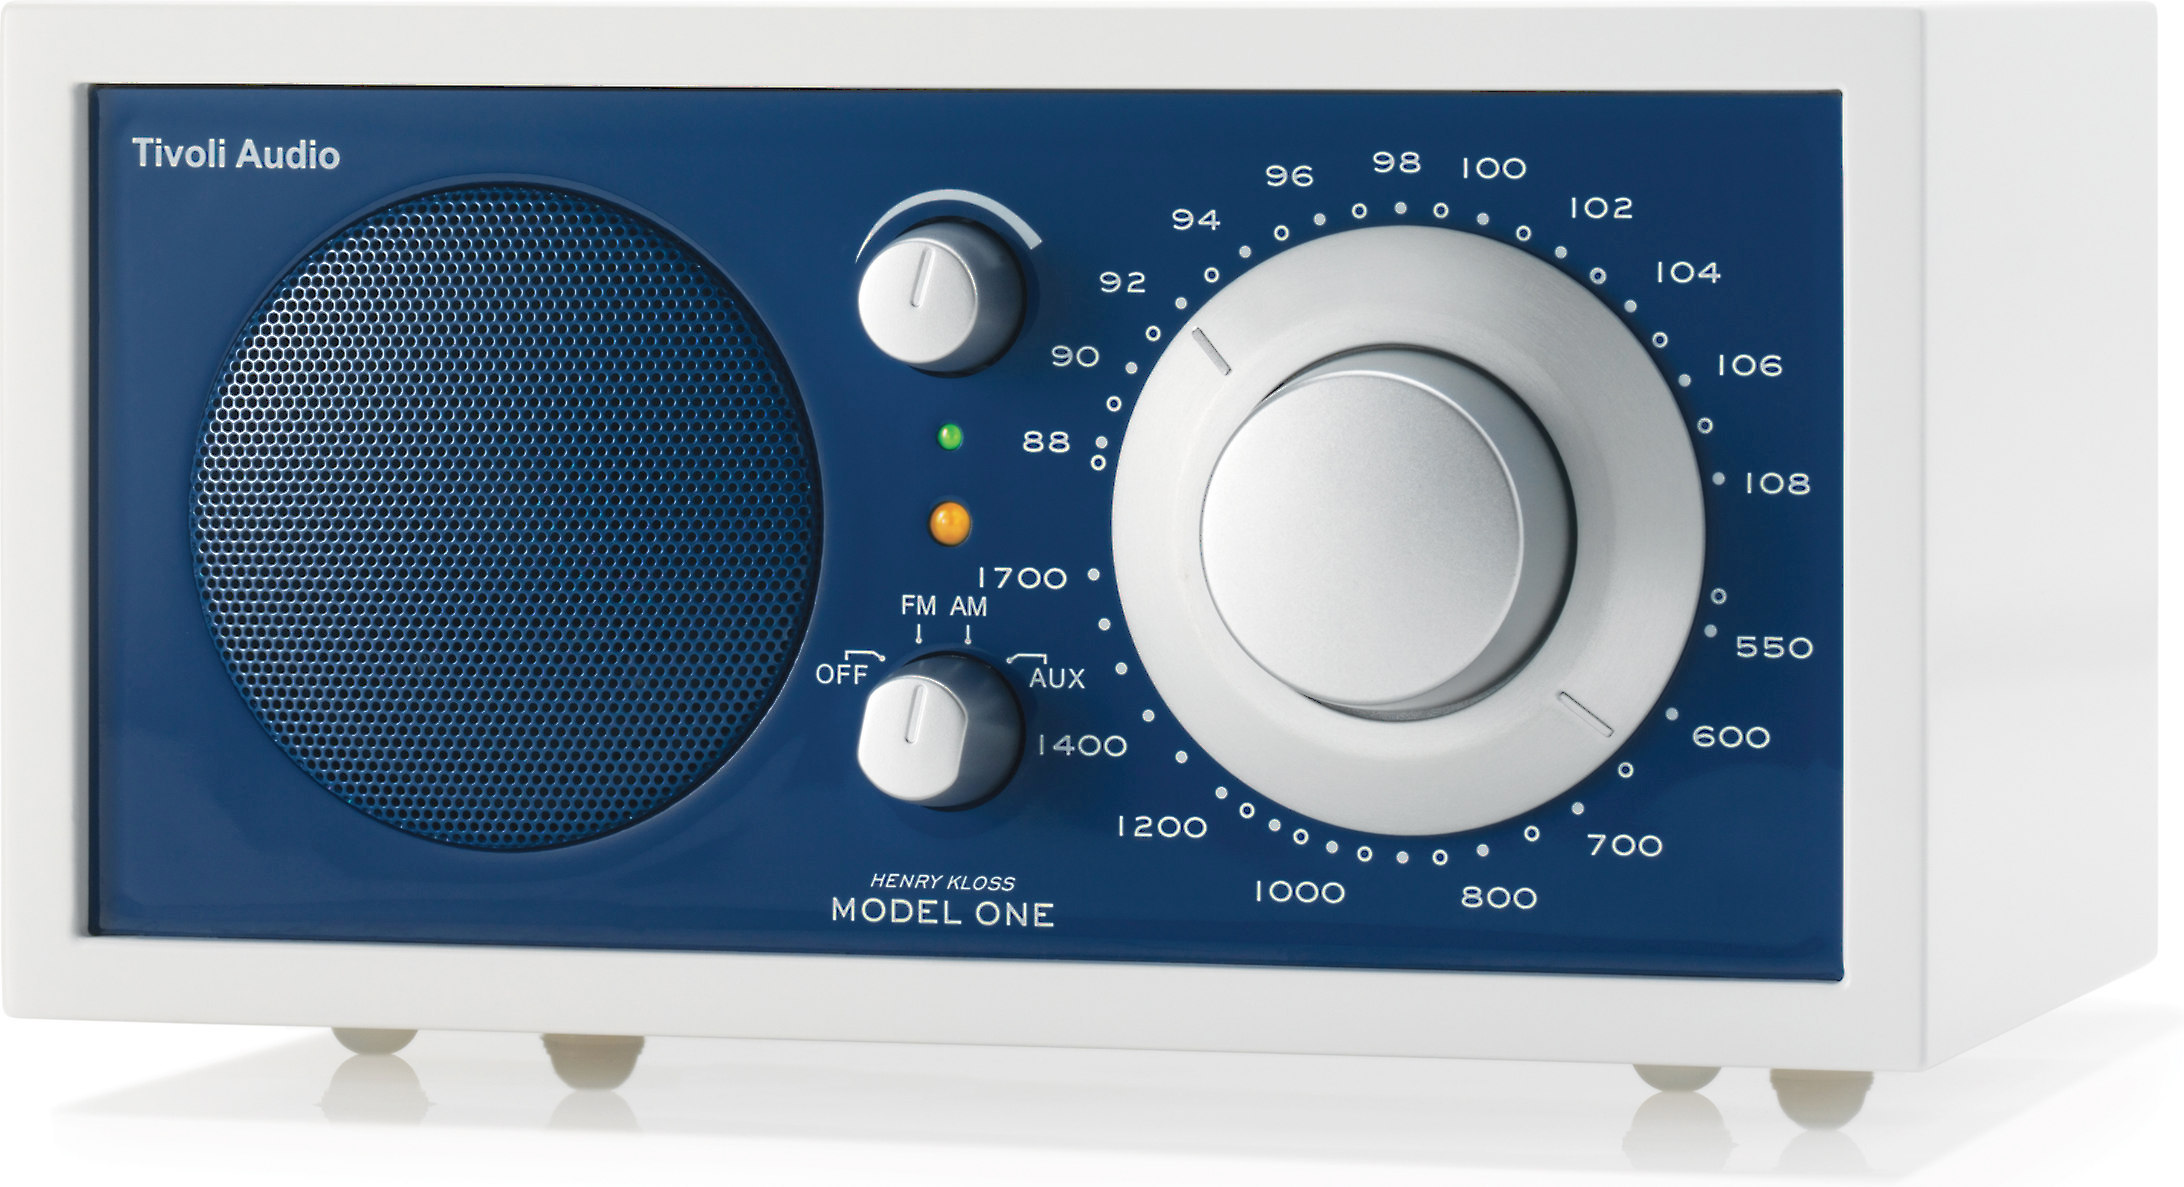 Tivoli Audio Model One Alternative Tivoli Audio Frost White Model One Frost White And Blue